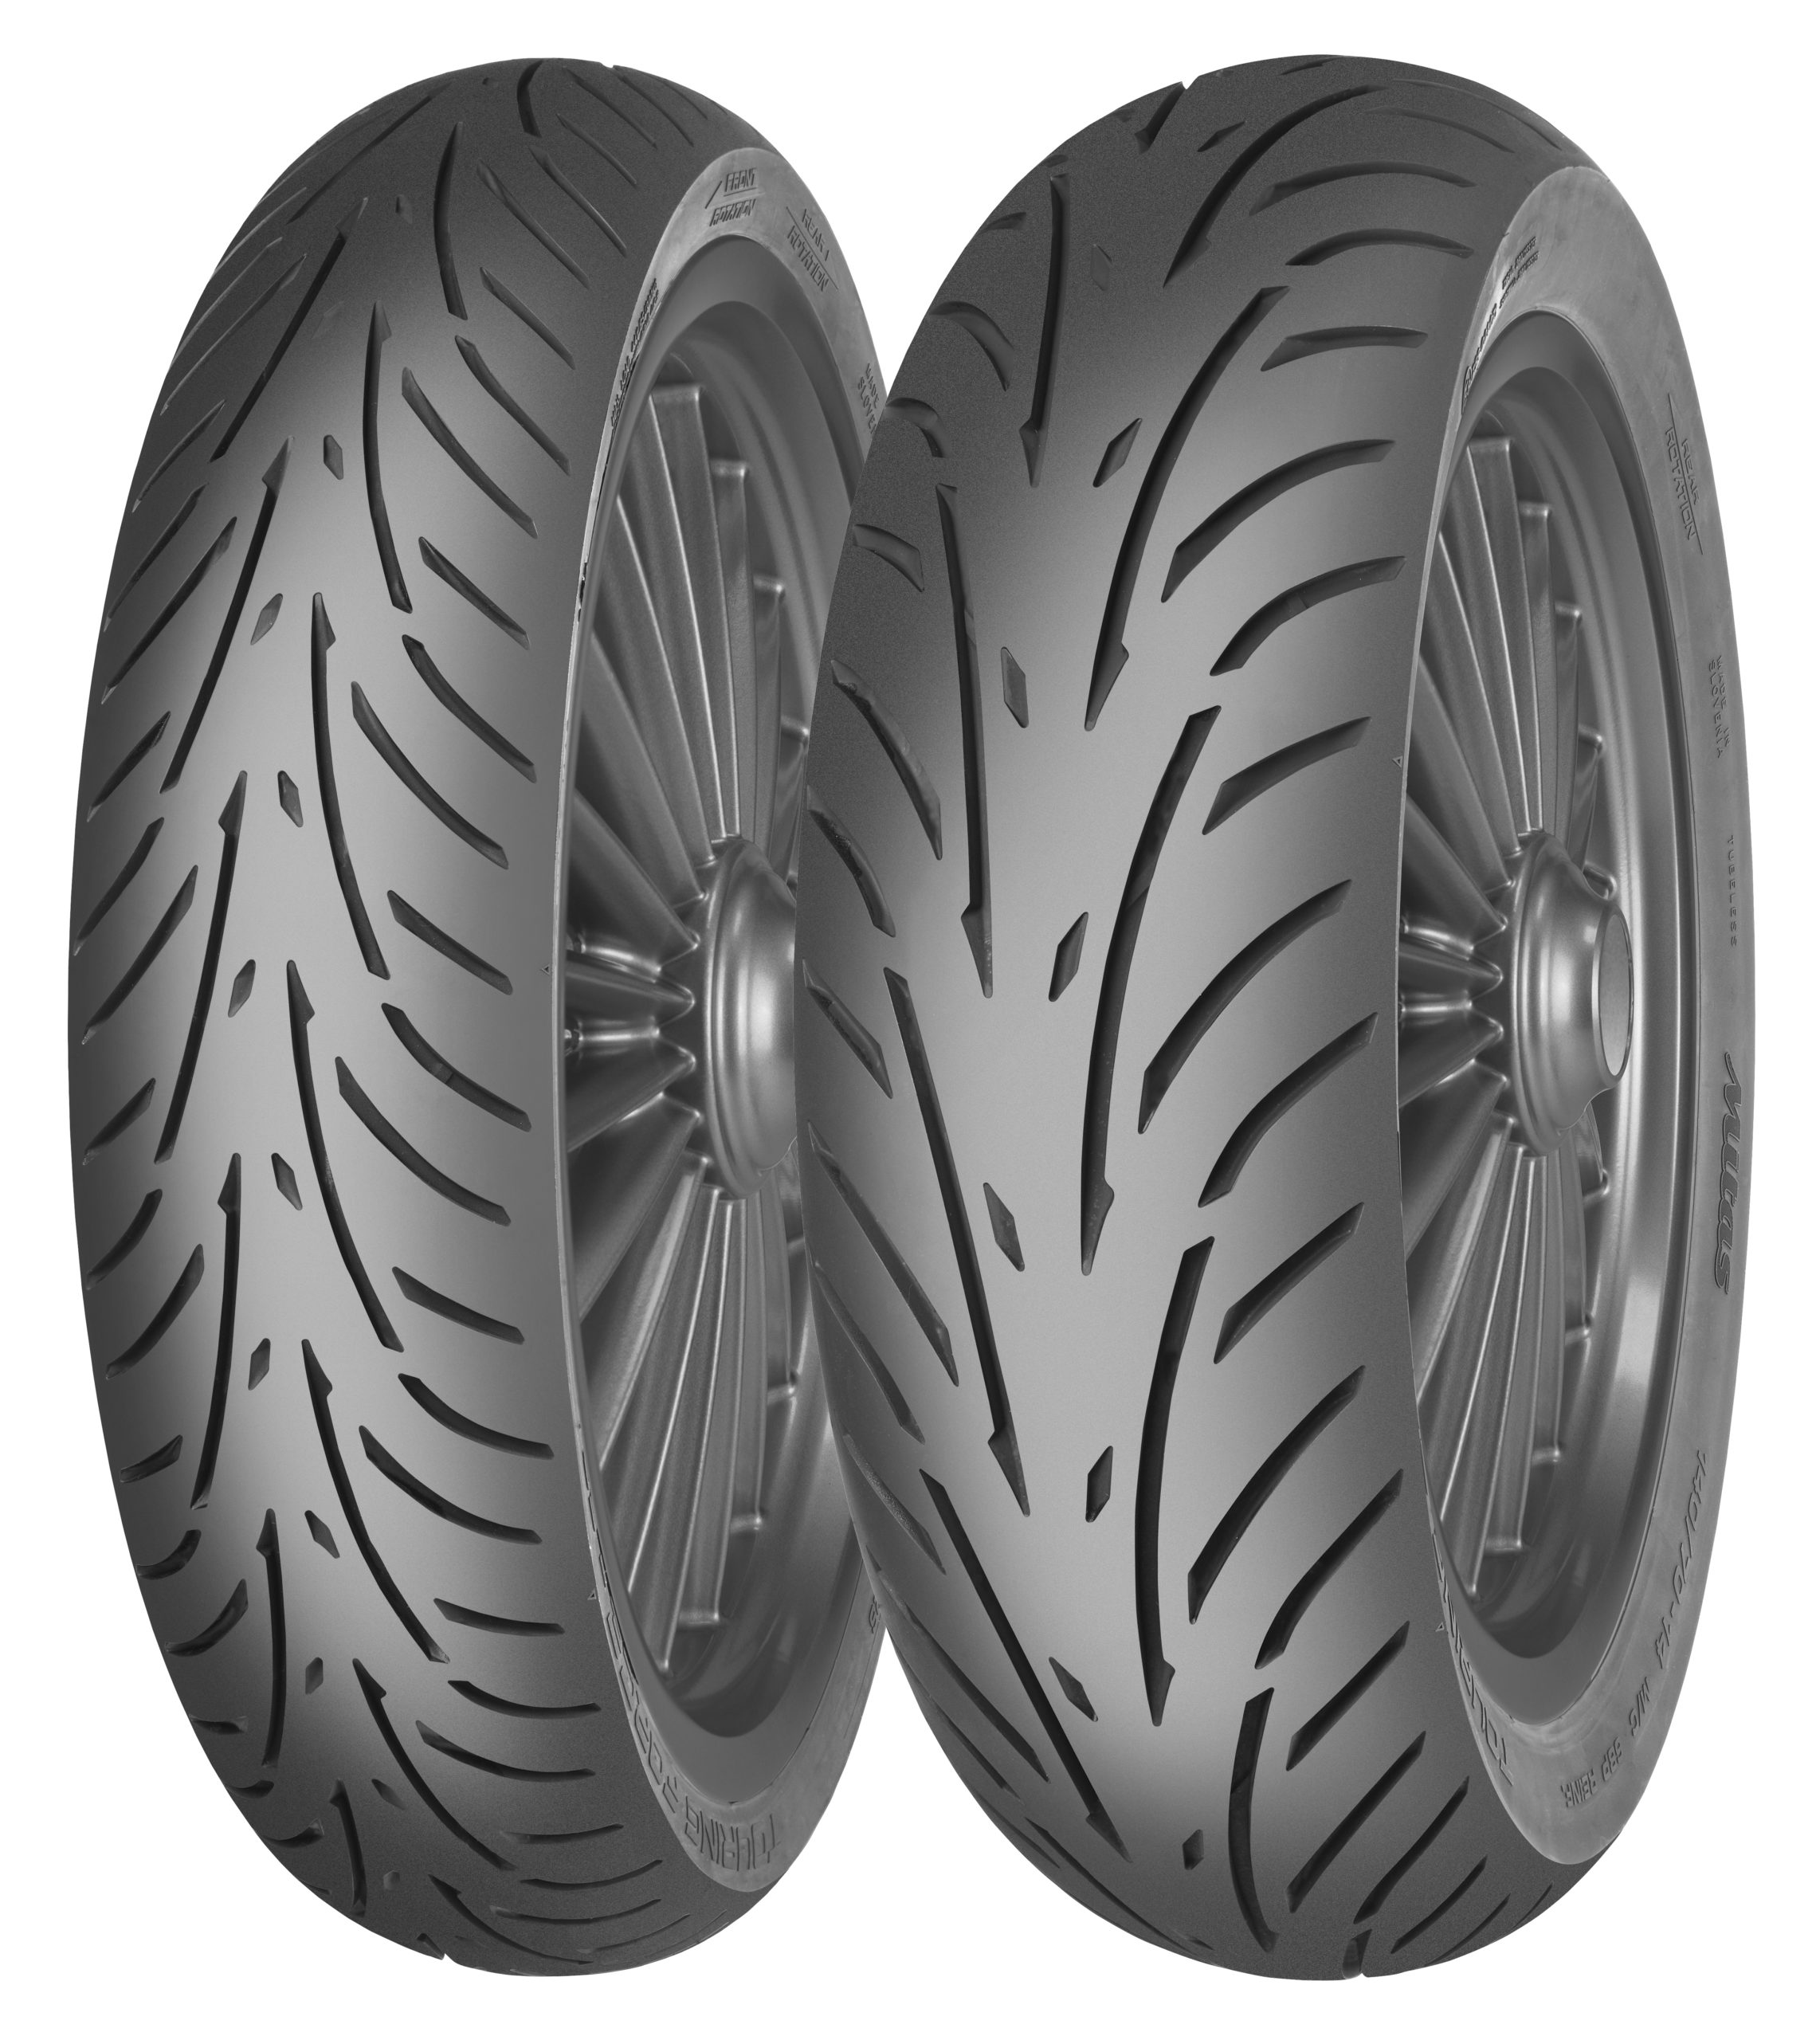 Anvelopa 140/60-14 64S TOURING FORCE-SC R TL MITAS